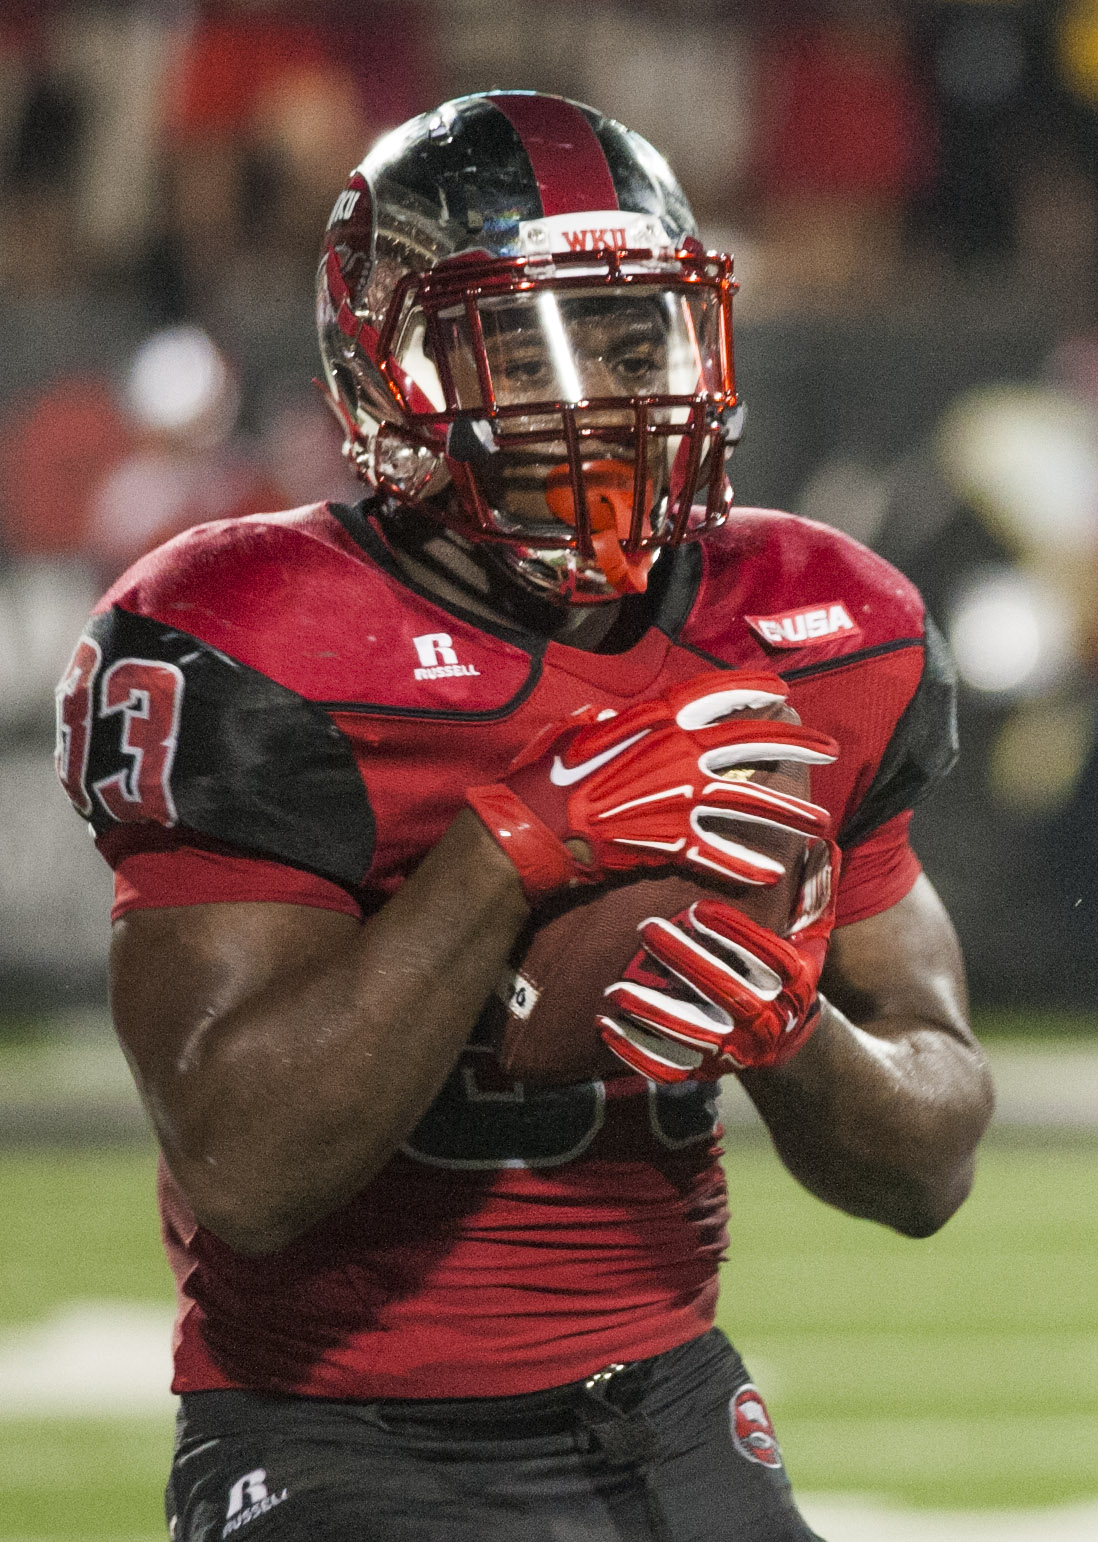 Western Kentucky running back Leon Allen makes a reception during Western Kentucky's 41-38 win over Louisiana Tech in an NCAA college football game Thursday, Sept. 10, 2015, in Bowling Green, Ky. (Austin Anthony/Daily News via AP)